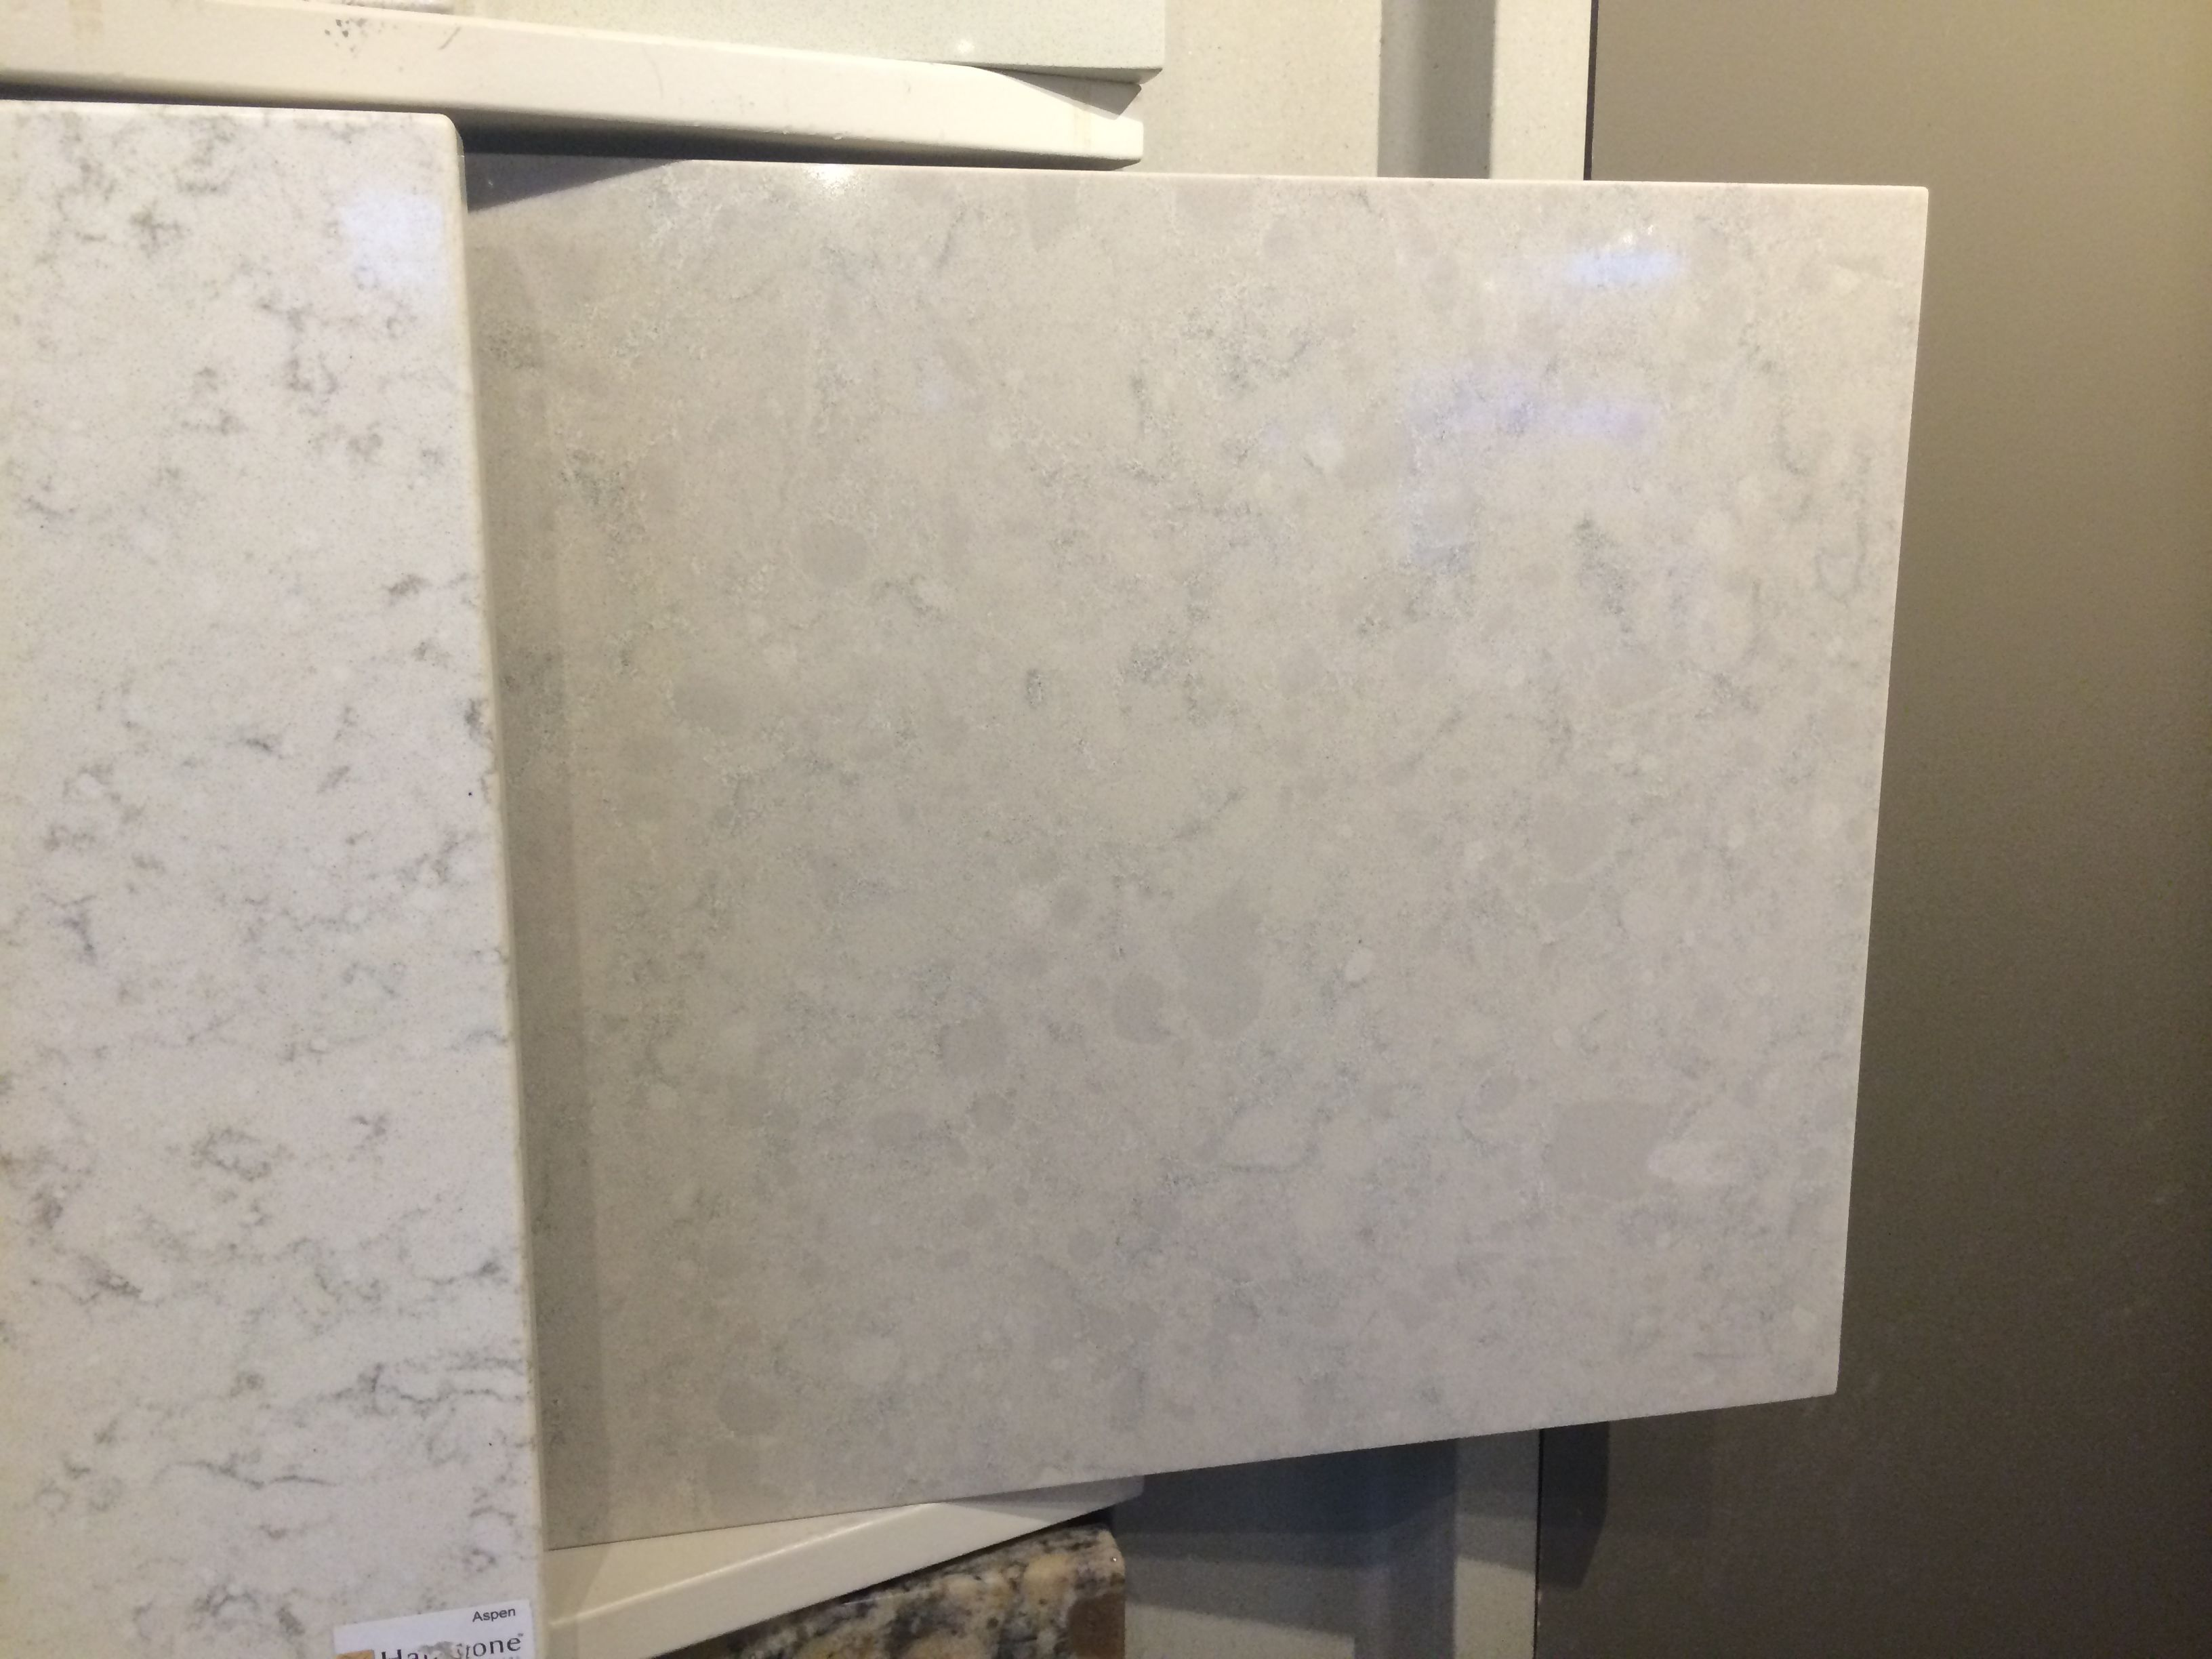 Limestone Quartz Countertops Viatera Quartz Natural Limestone Kitchen Reno Ideas